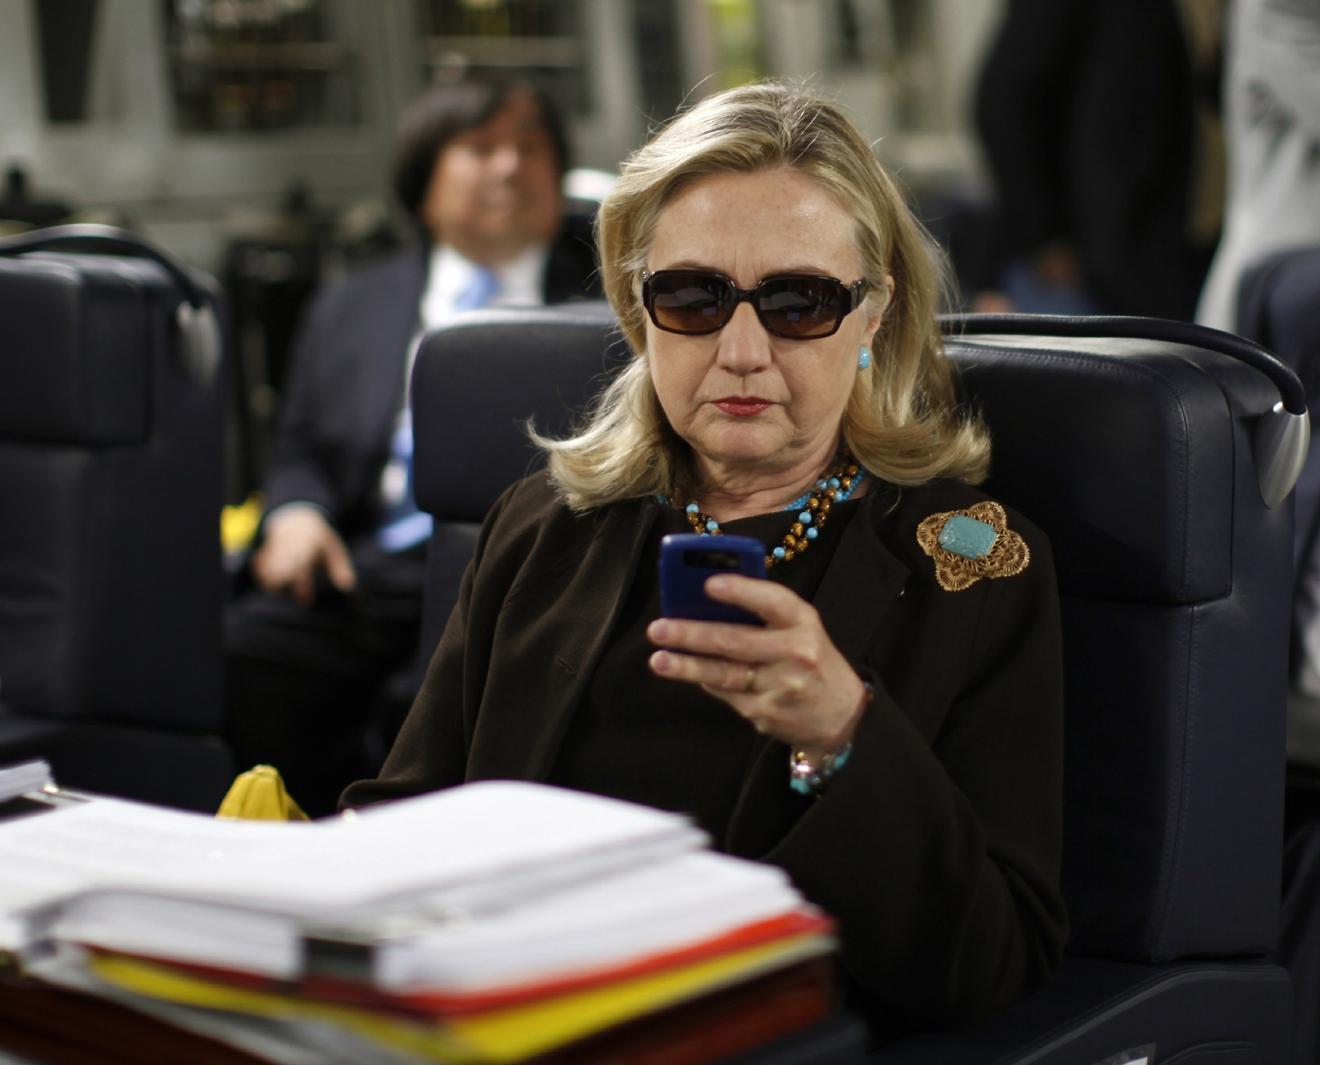 FILE - In this Oct. 18, 2011, file photo, then-Secretary of State Hillary Rodham Clinton checks her Blackberry from a desk inside a C-17 military plane upon her departure from Malta, in the Mediterranean Sea, bound for Tripoli, Libya. (AP Photo/Kevin Lamarque, Pool, File)